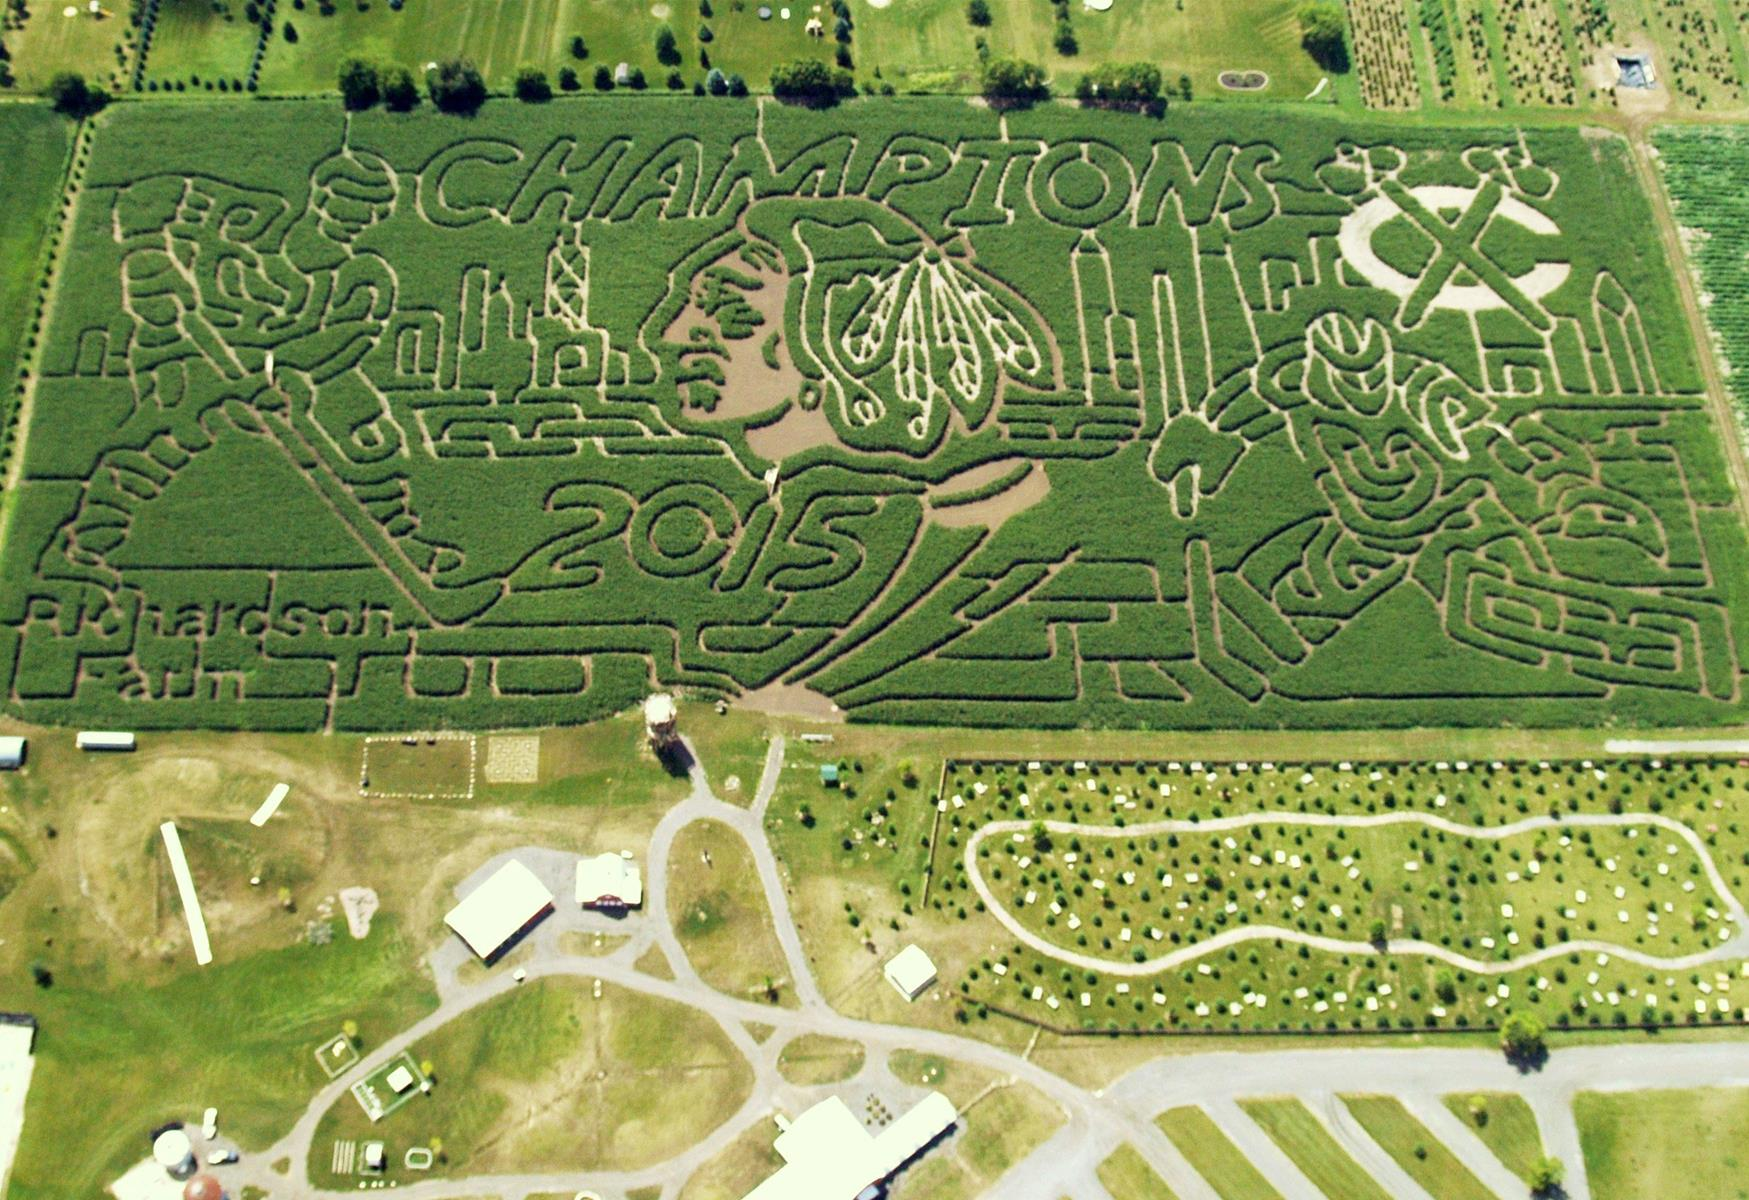 Richardson Adventure Farm's Corn Maze Makes Top-10